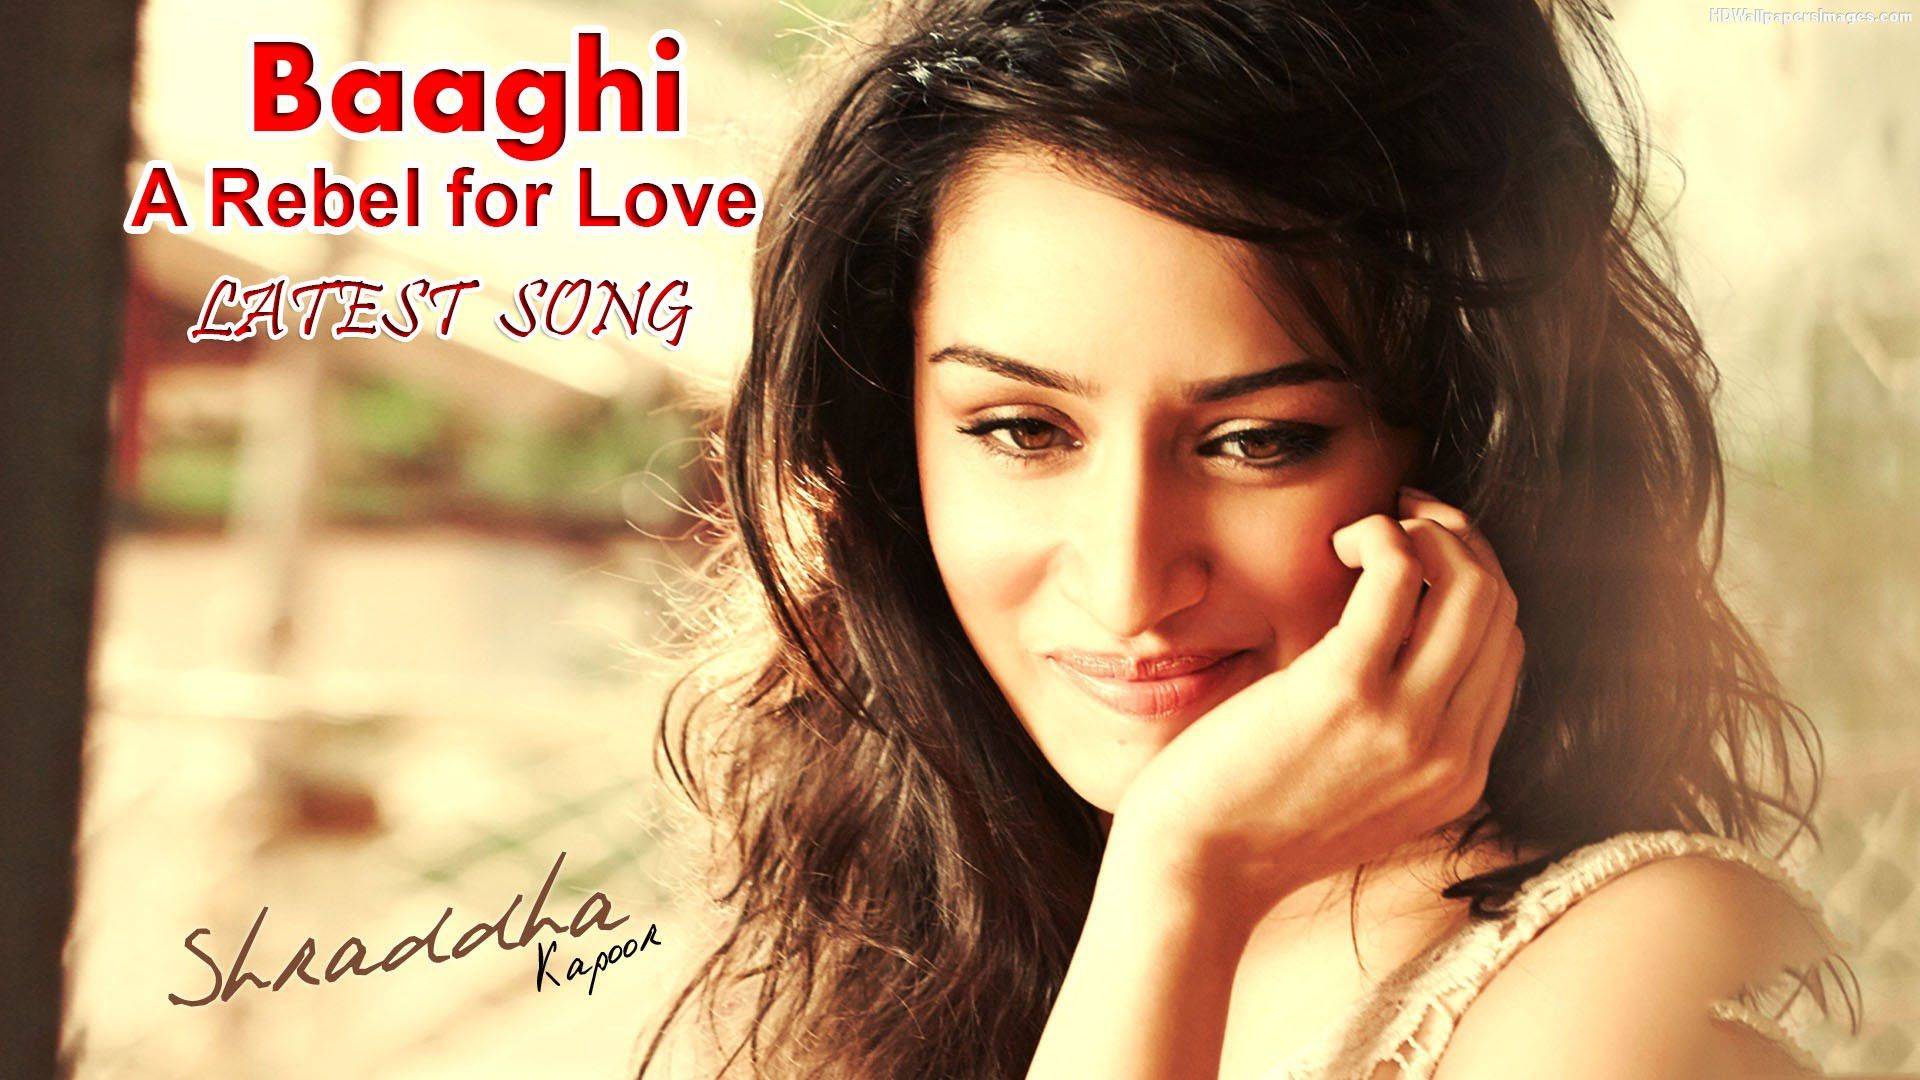 baaghi movie heroine shraddha kapoor photos | http://www